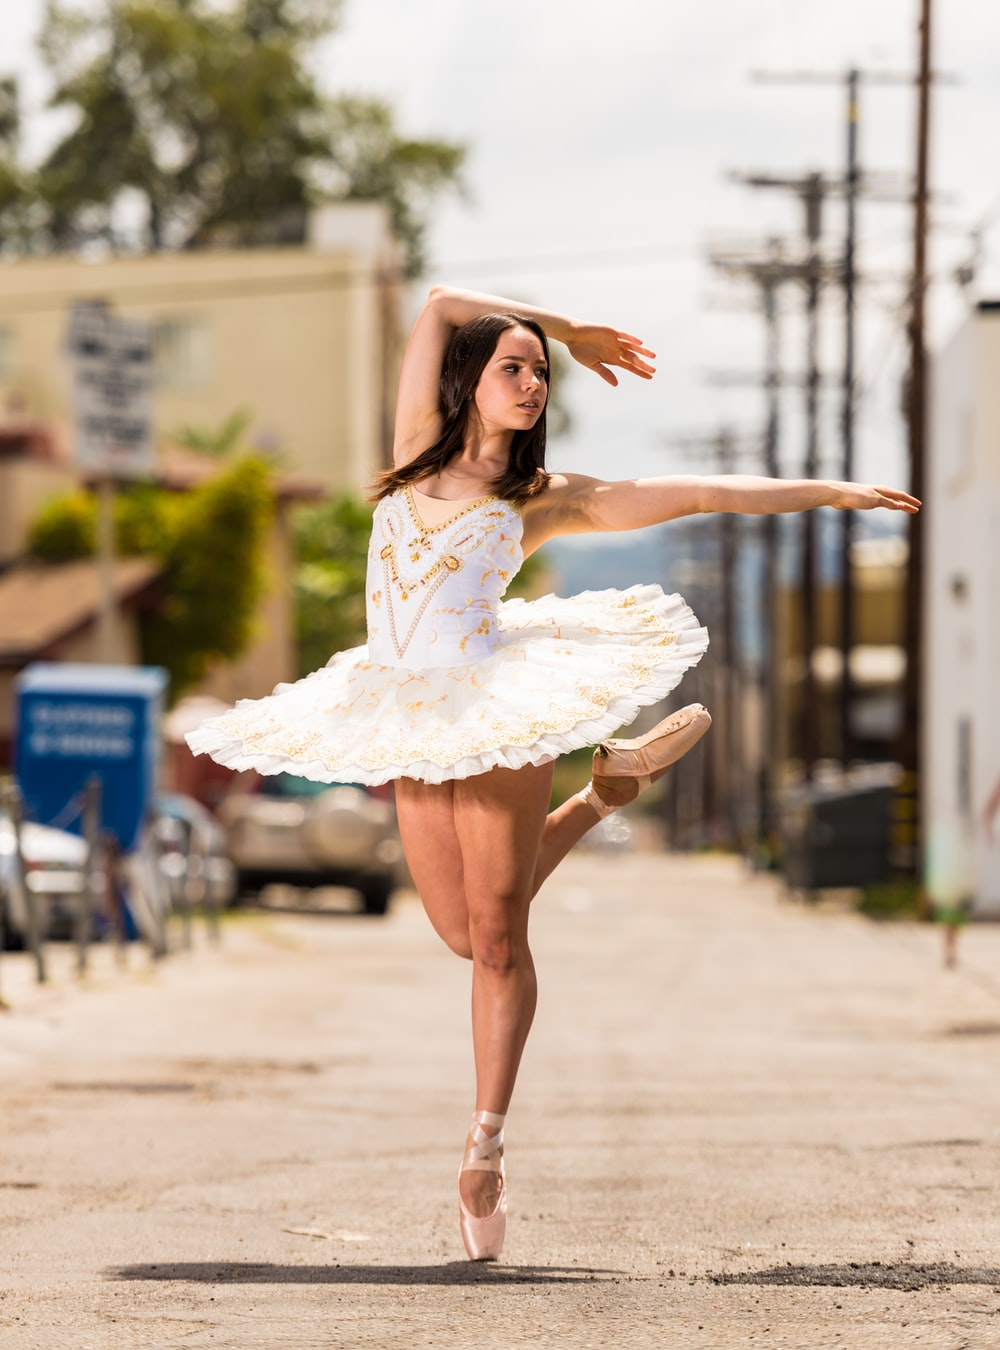 shallow focus photography of woman in white dress dancing